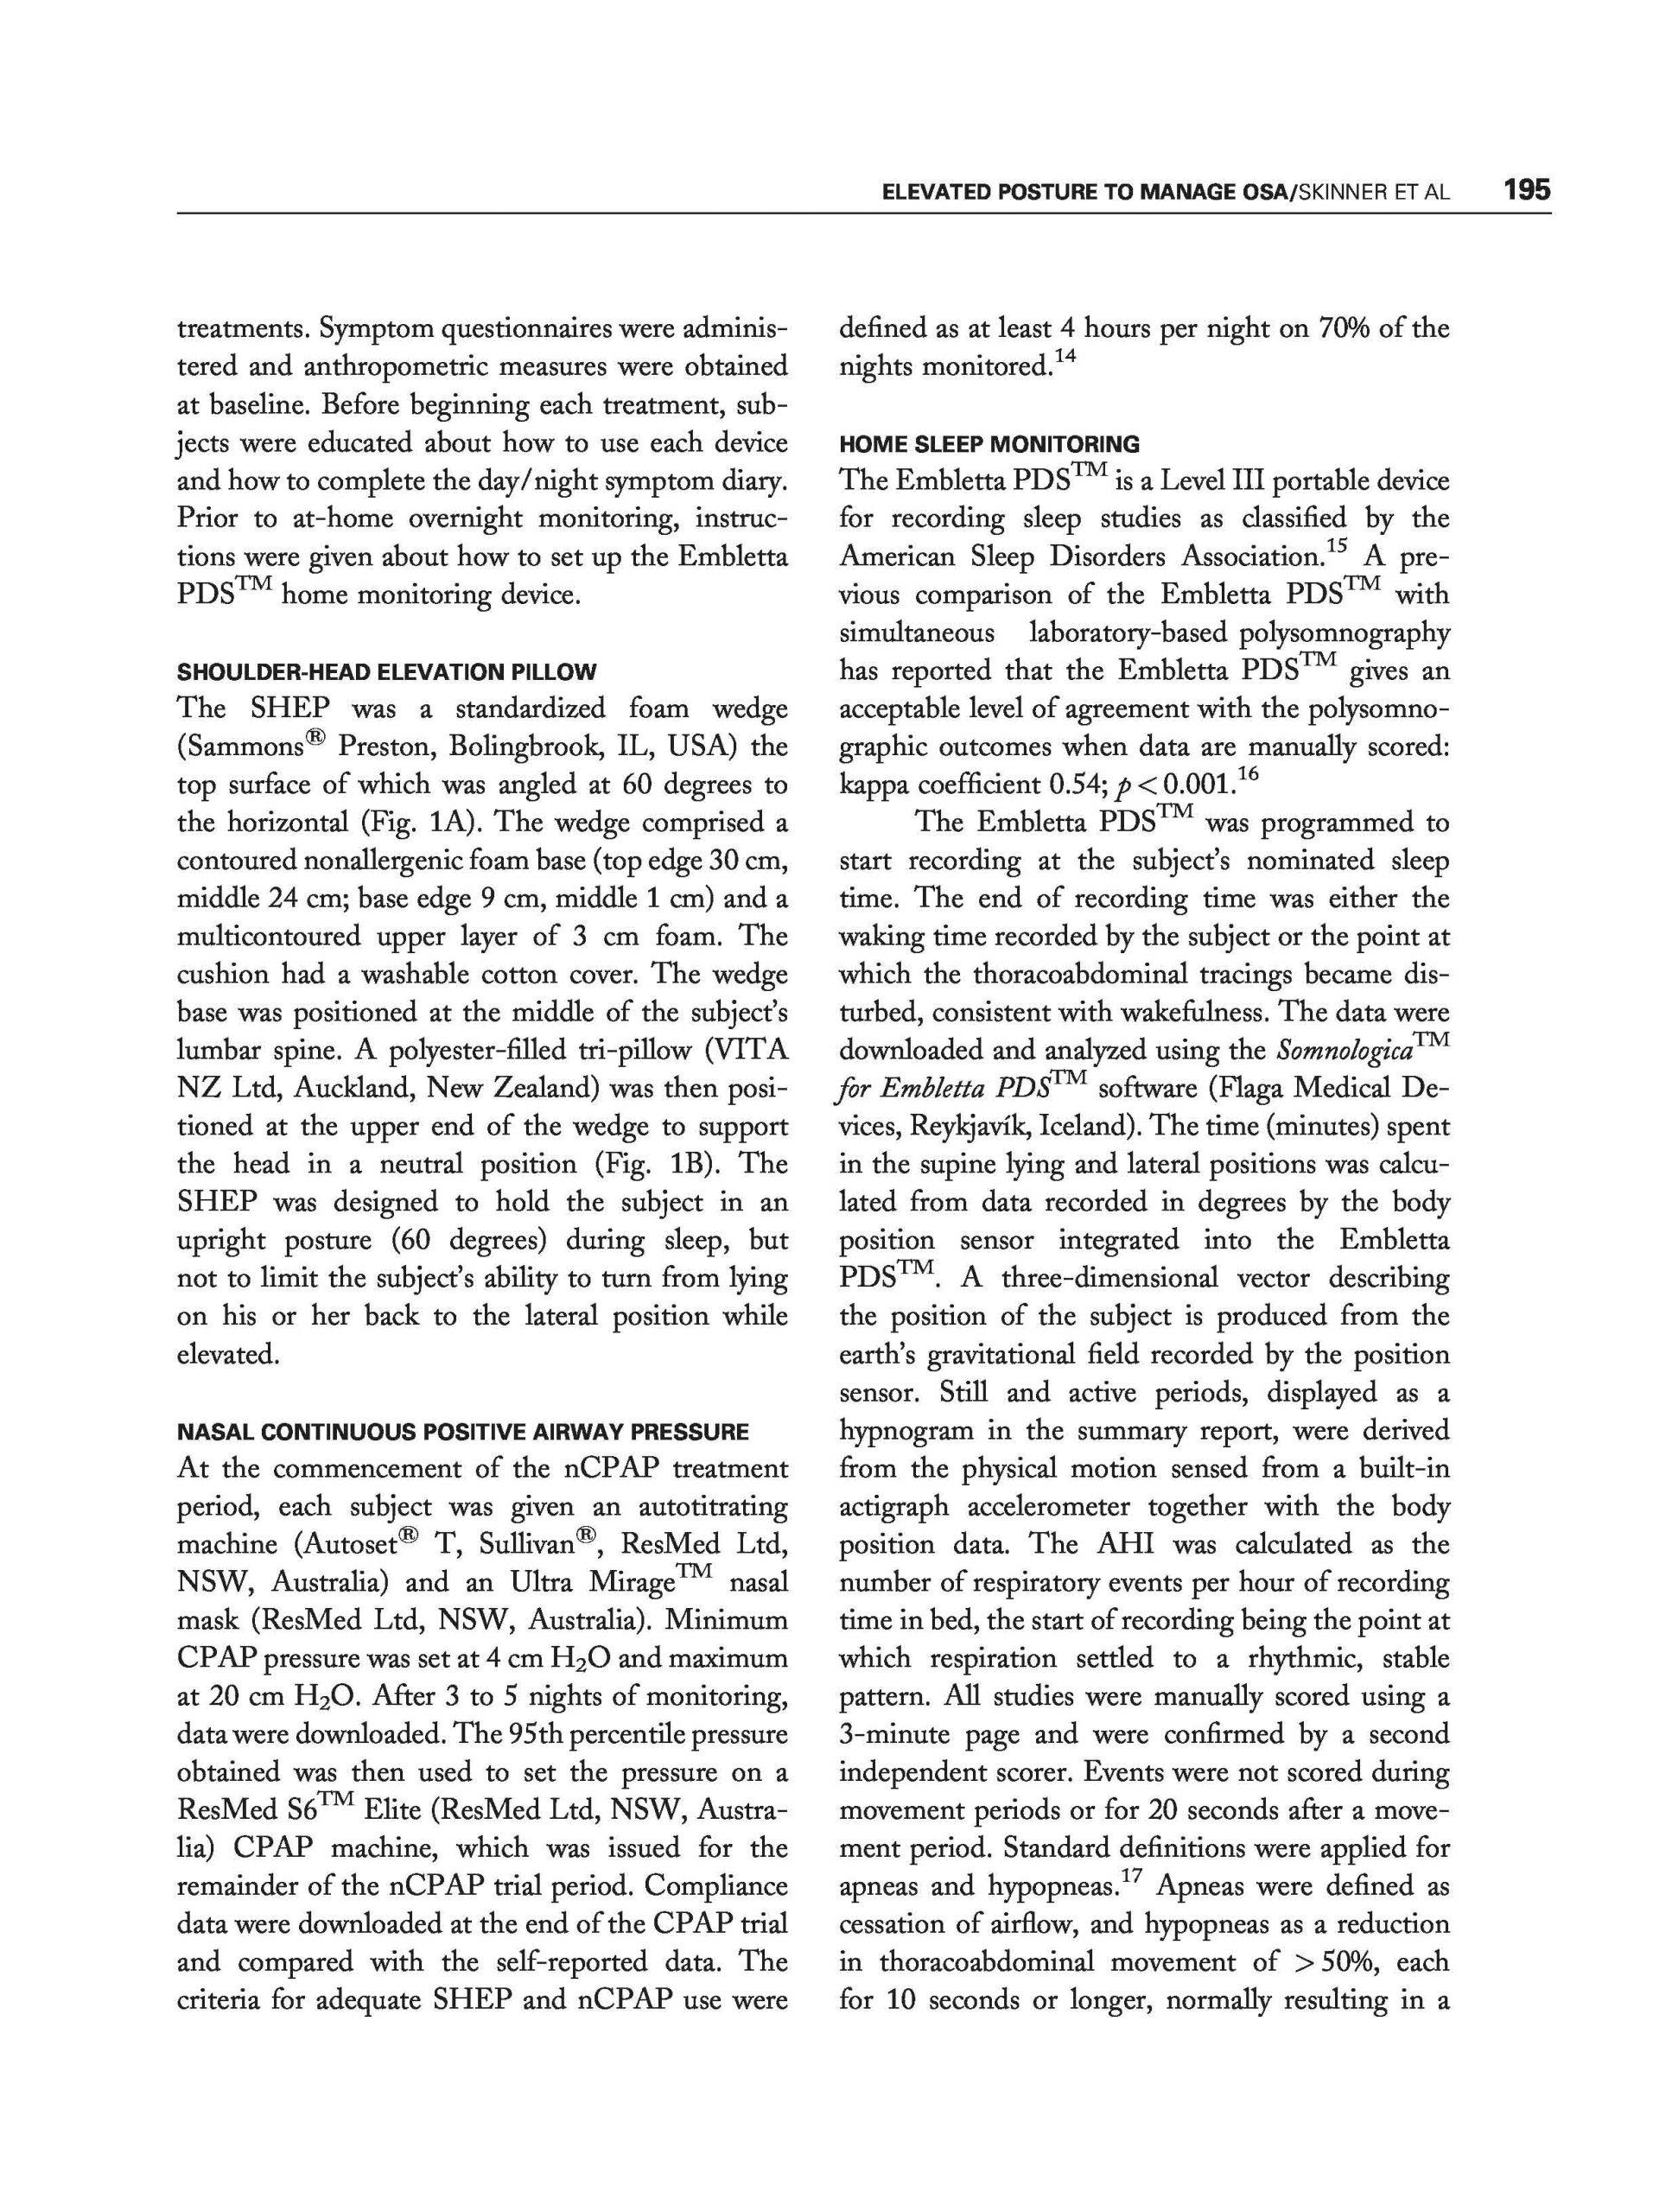 Elevated Posture for the Management page 2 scaled